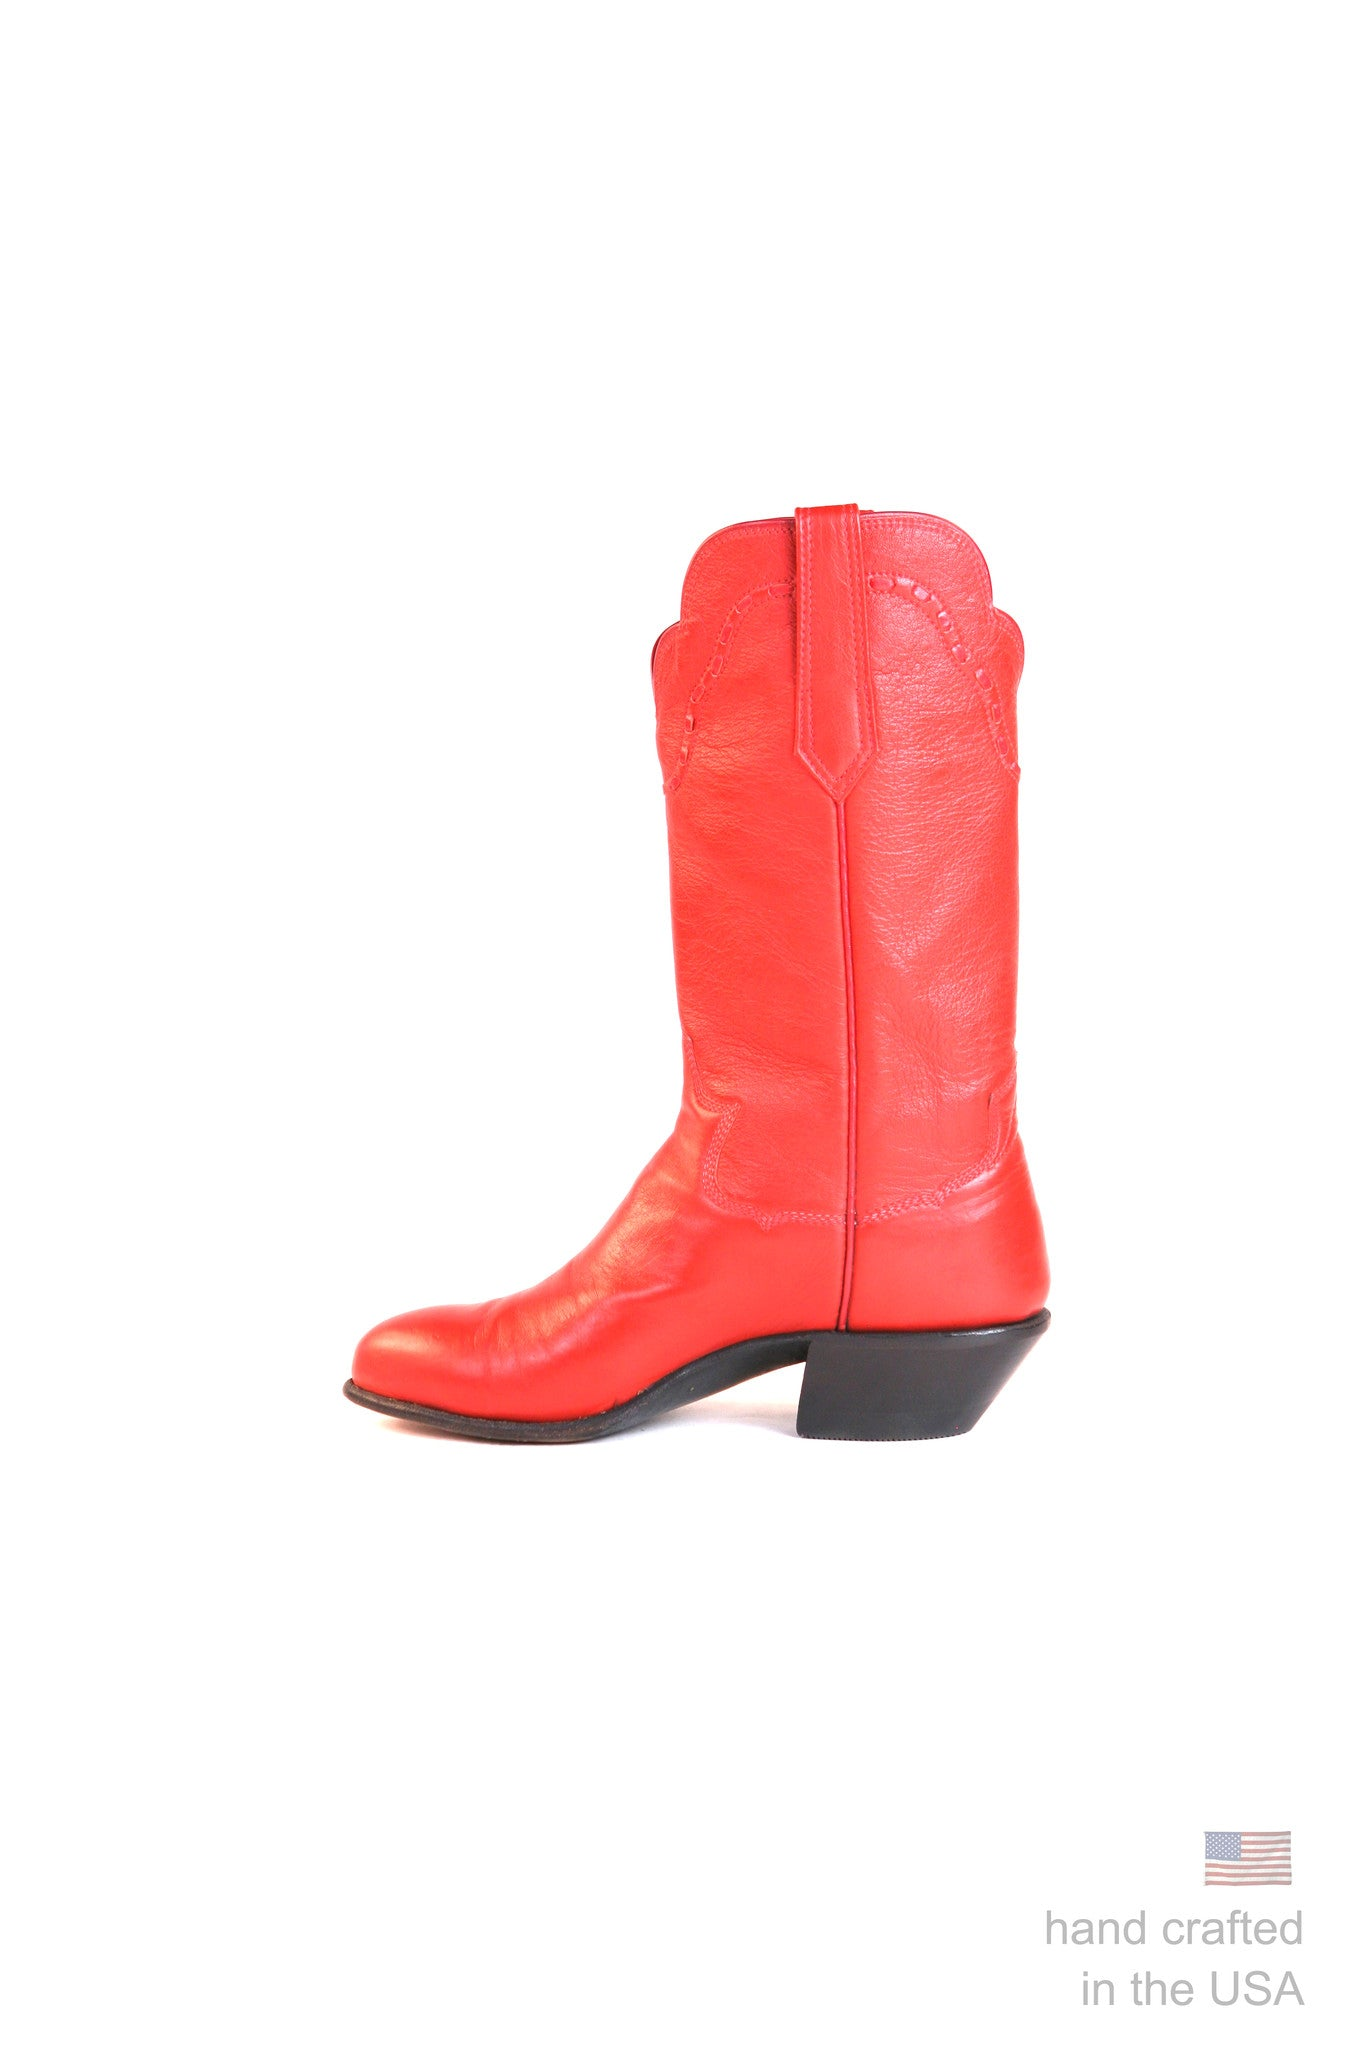 Singles: Boot 0052: Size 6.5 C